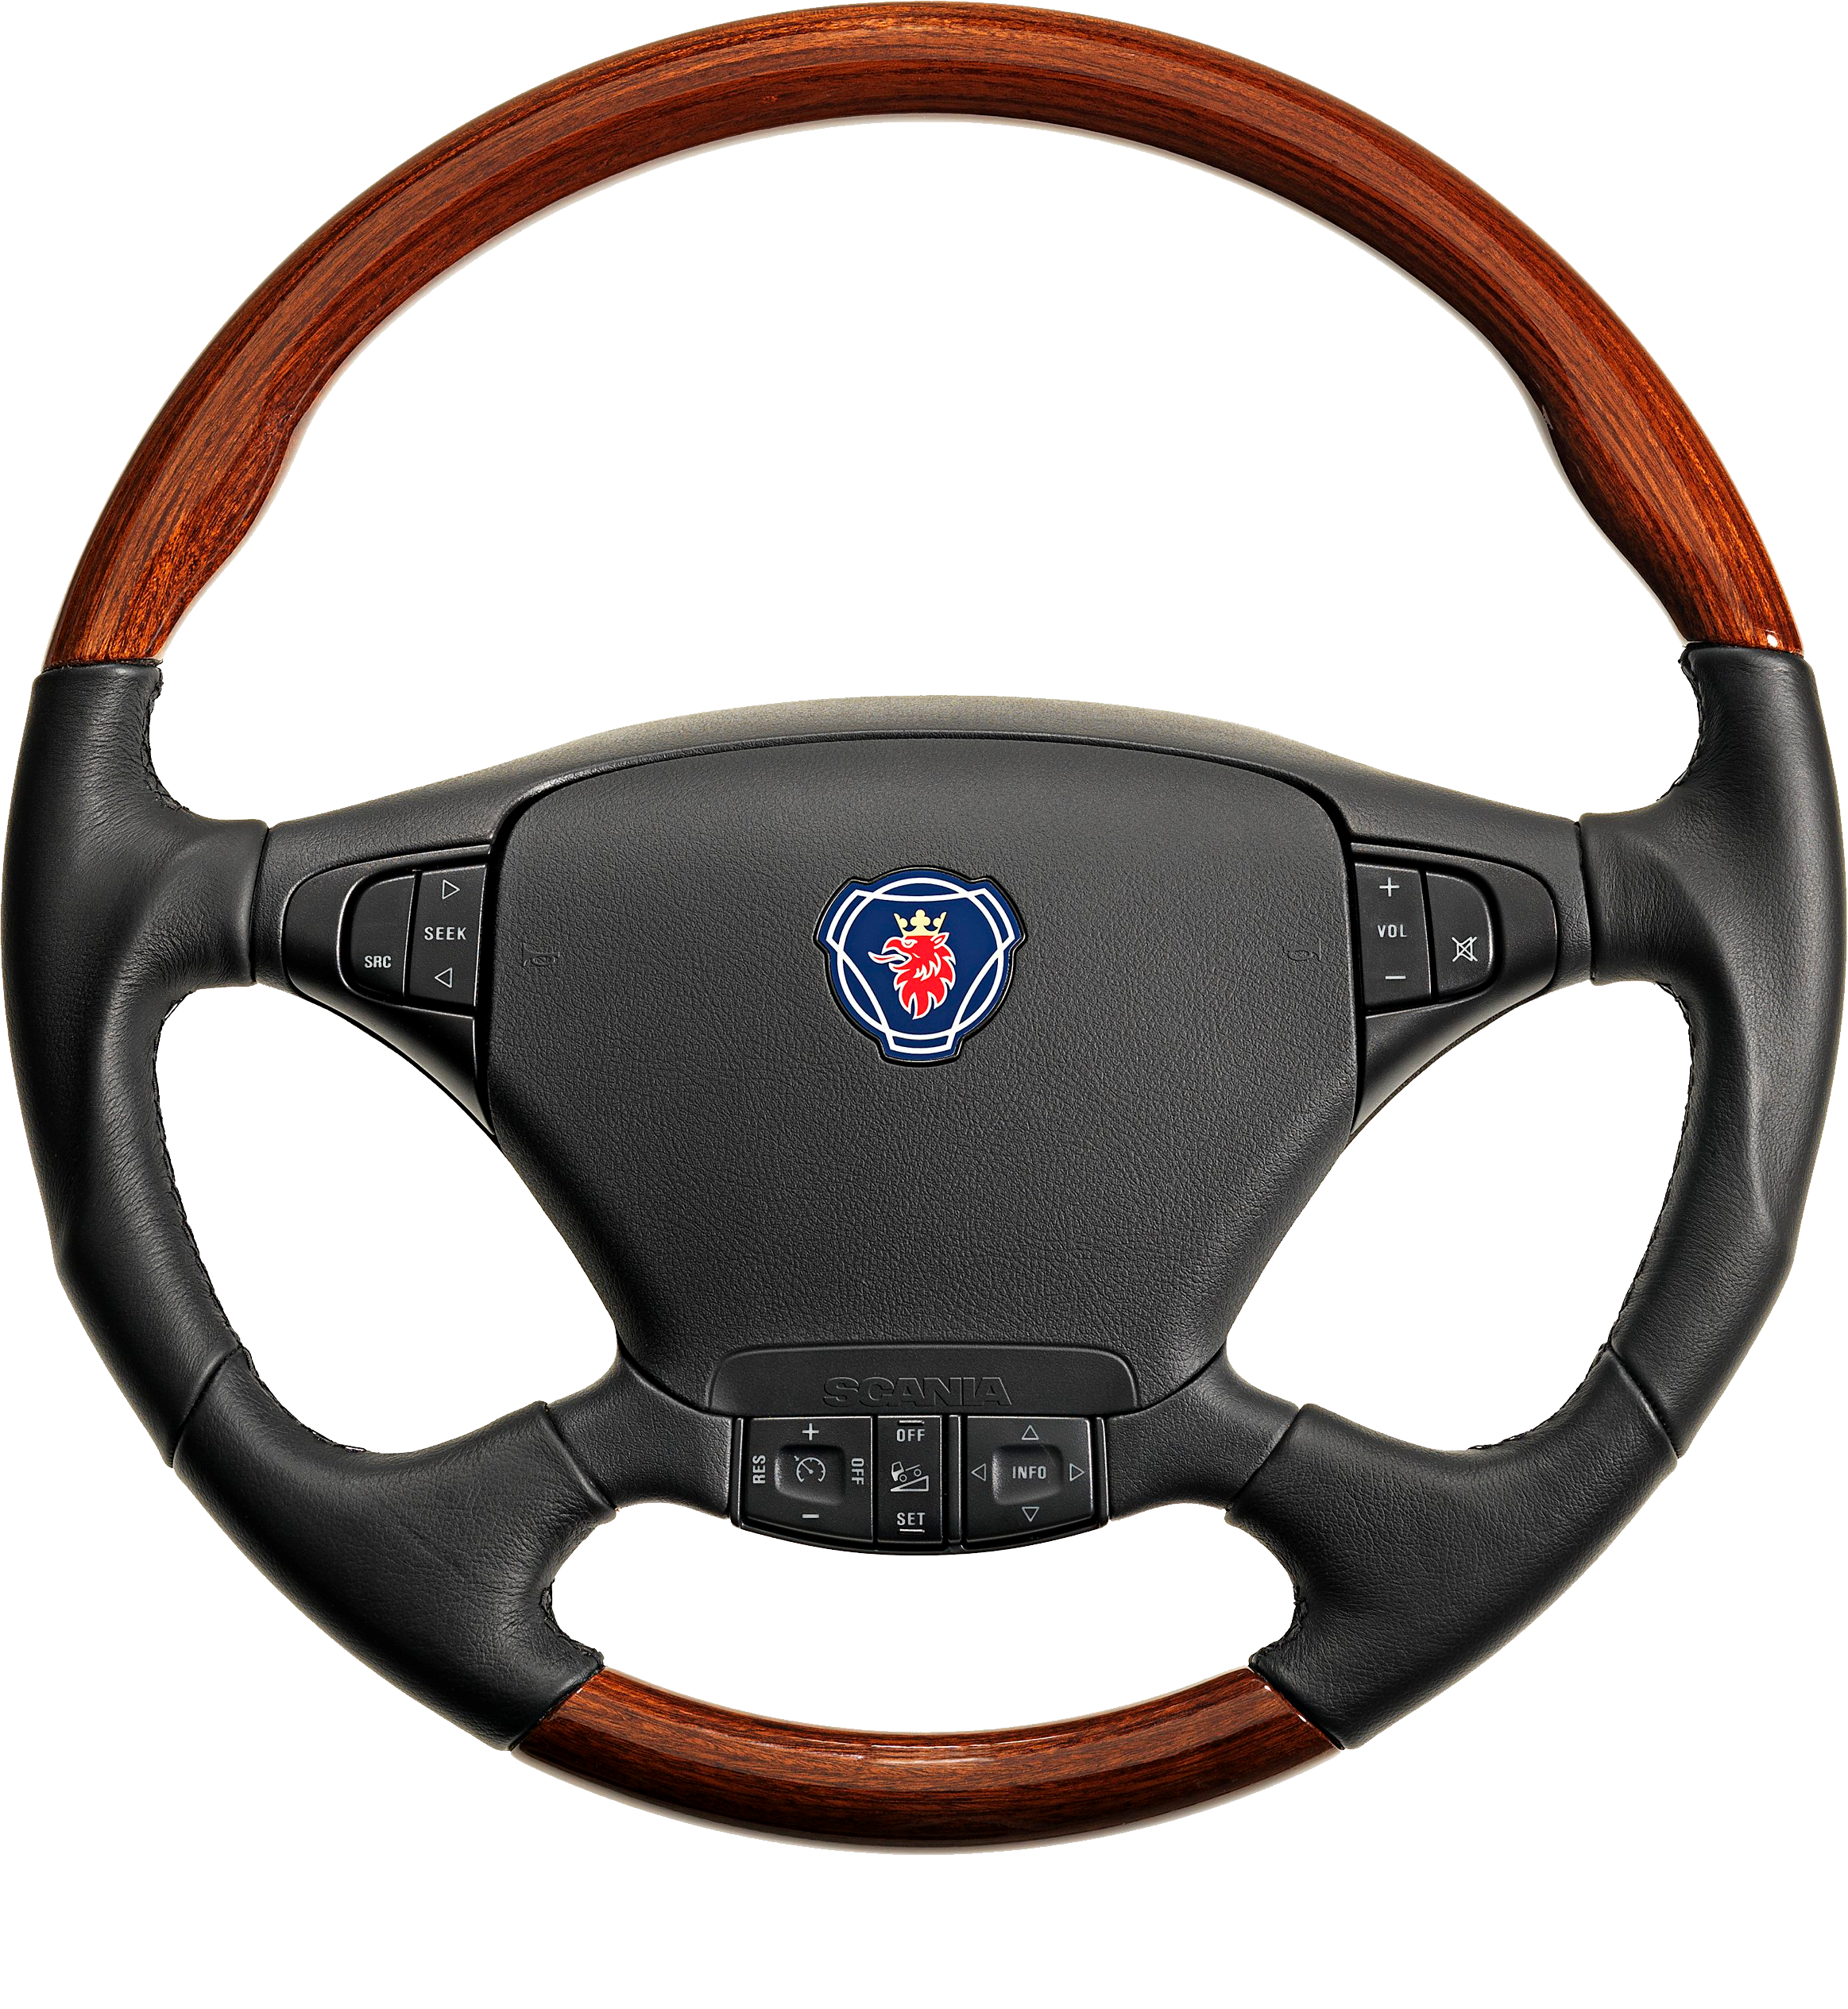 vector royalty free download Clipart steering wheel. Png image without background.